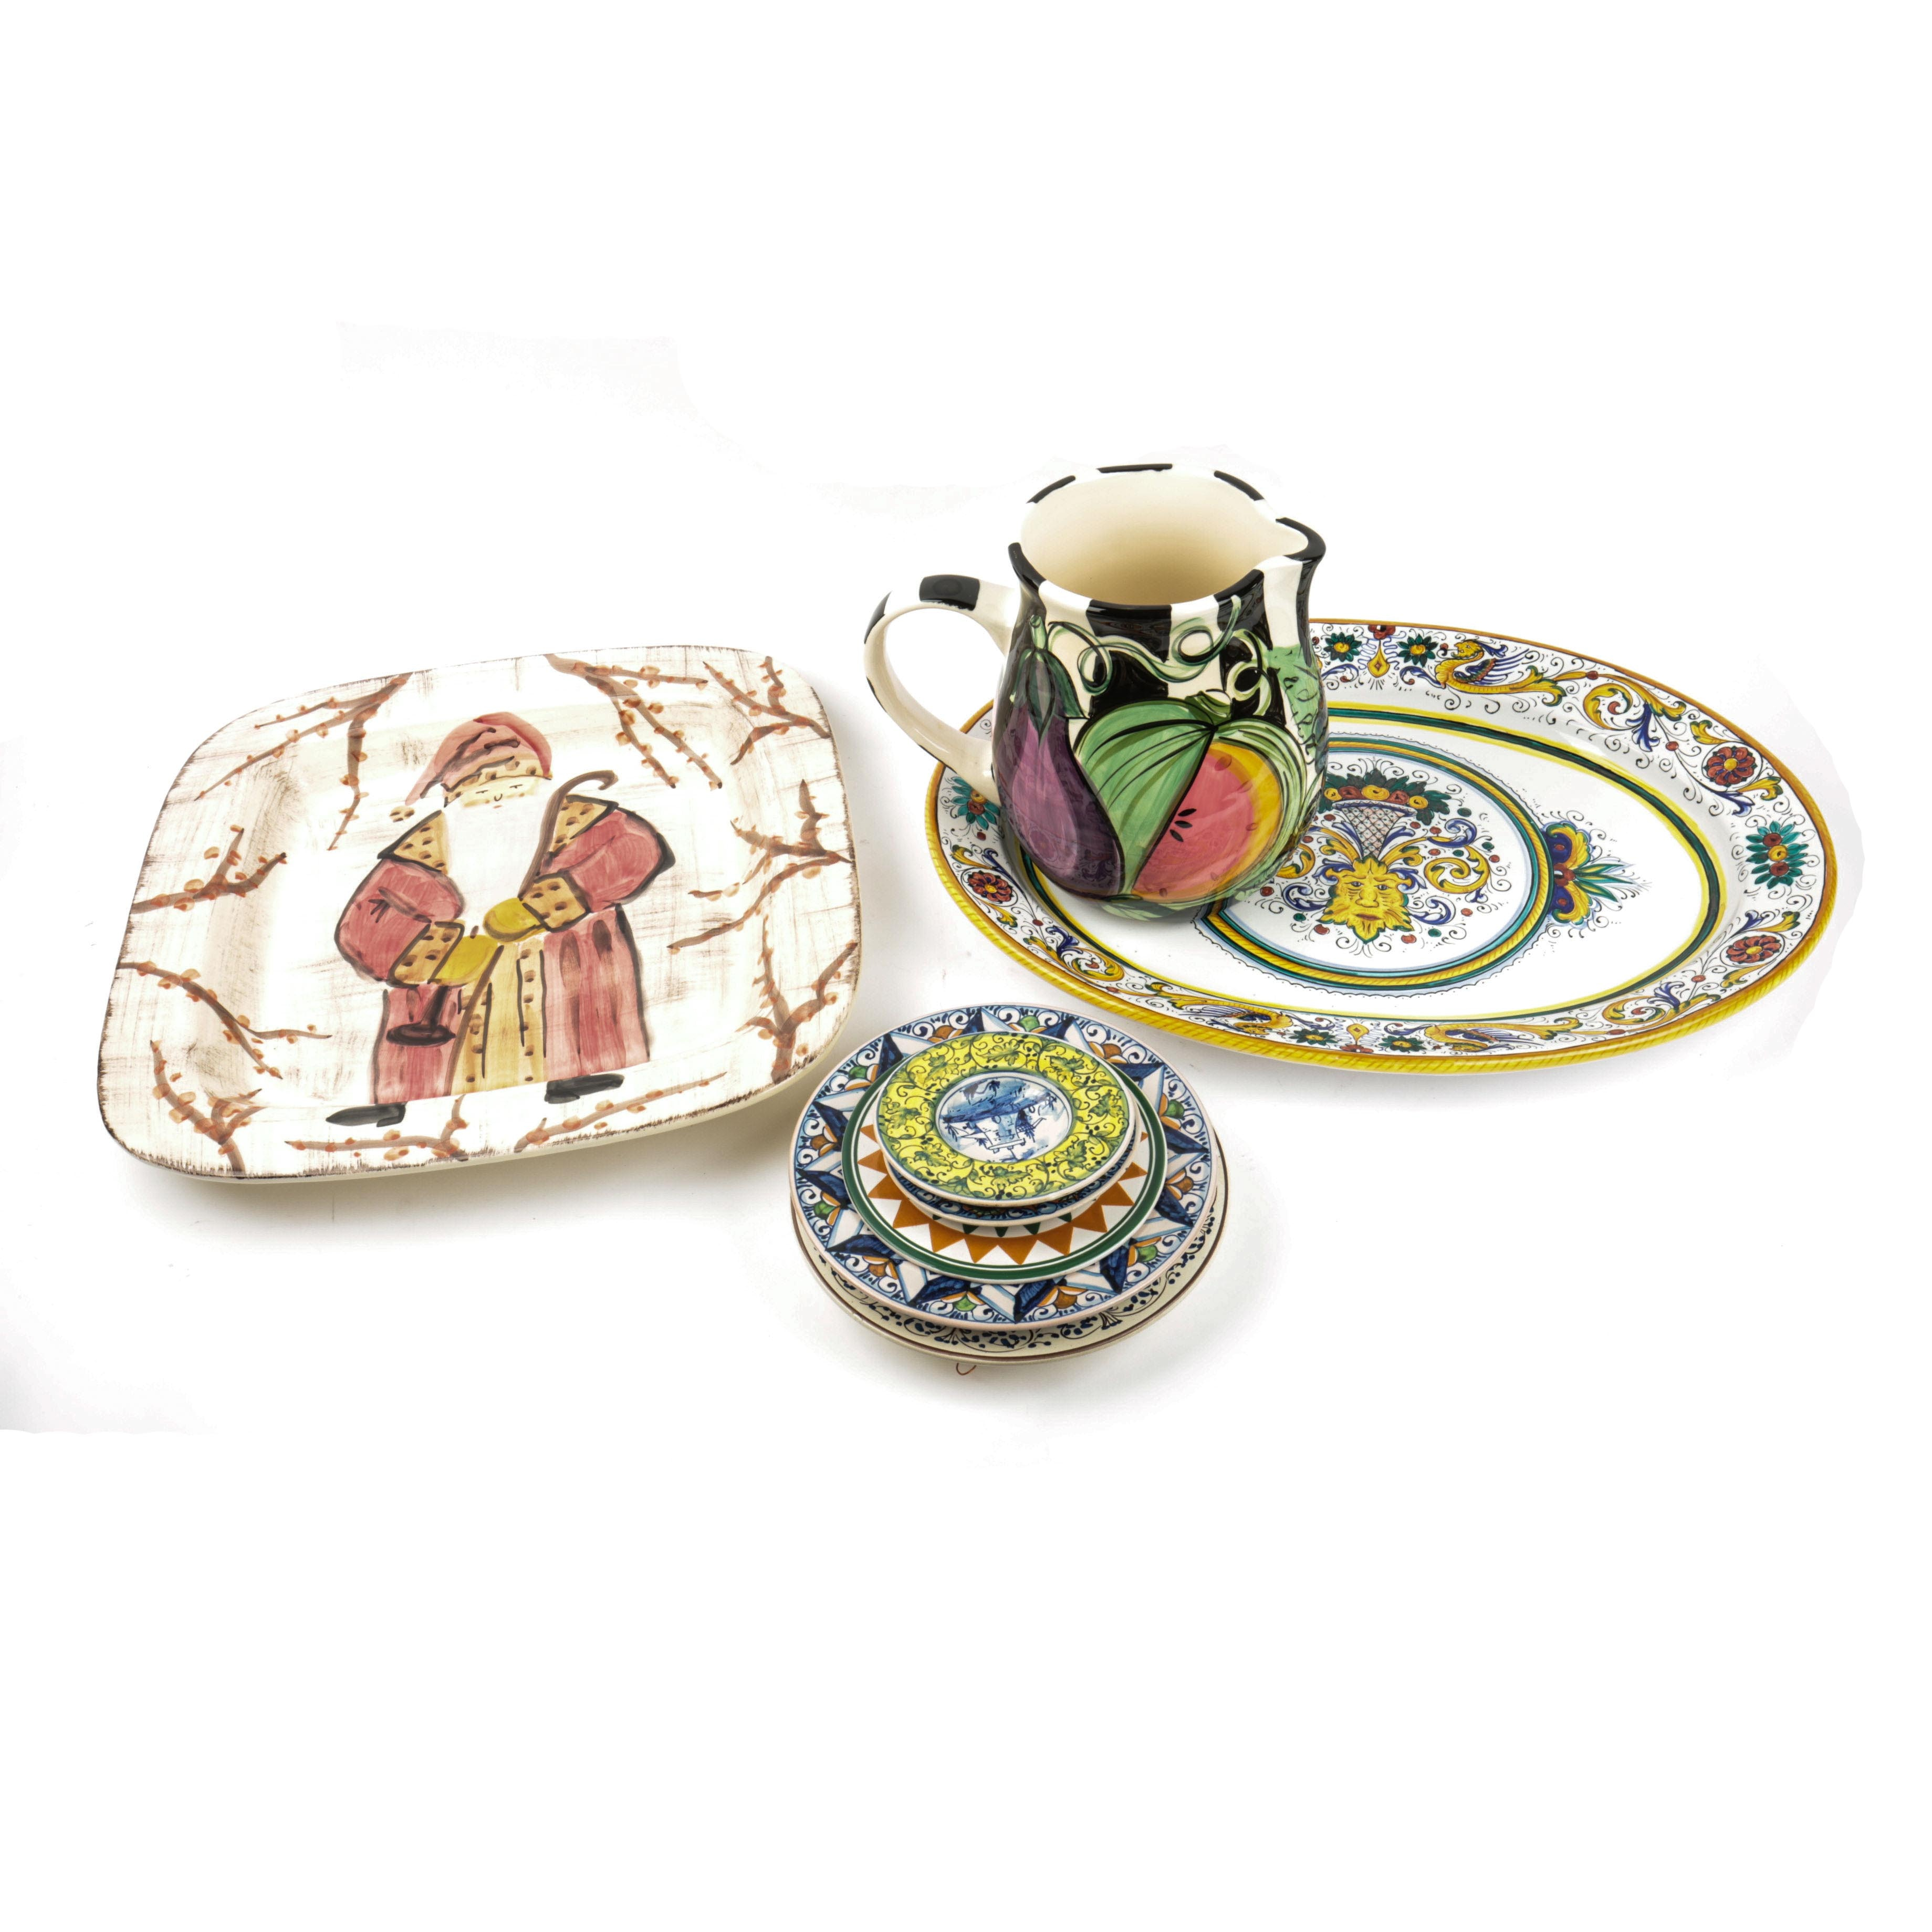 Italian Hand-Painted Ceramic Plates and a Pitcher